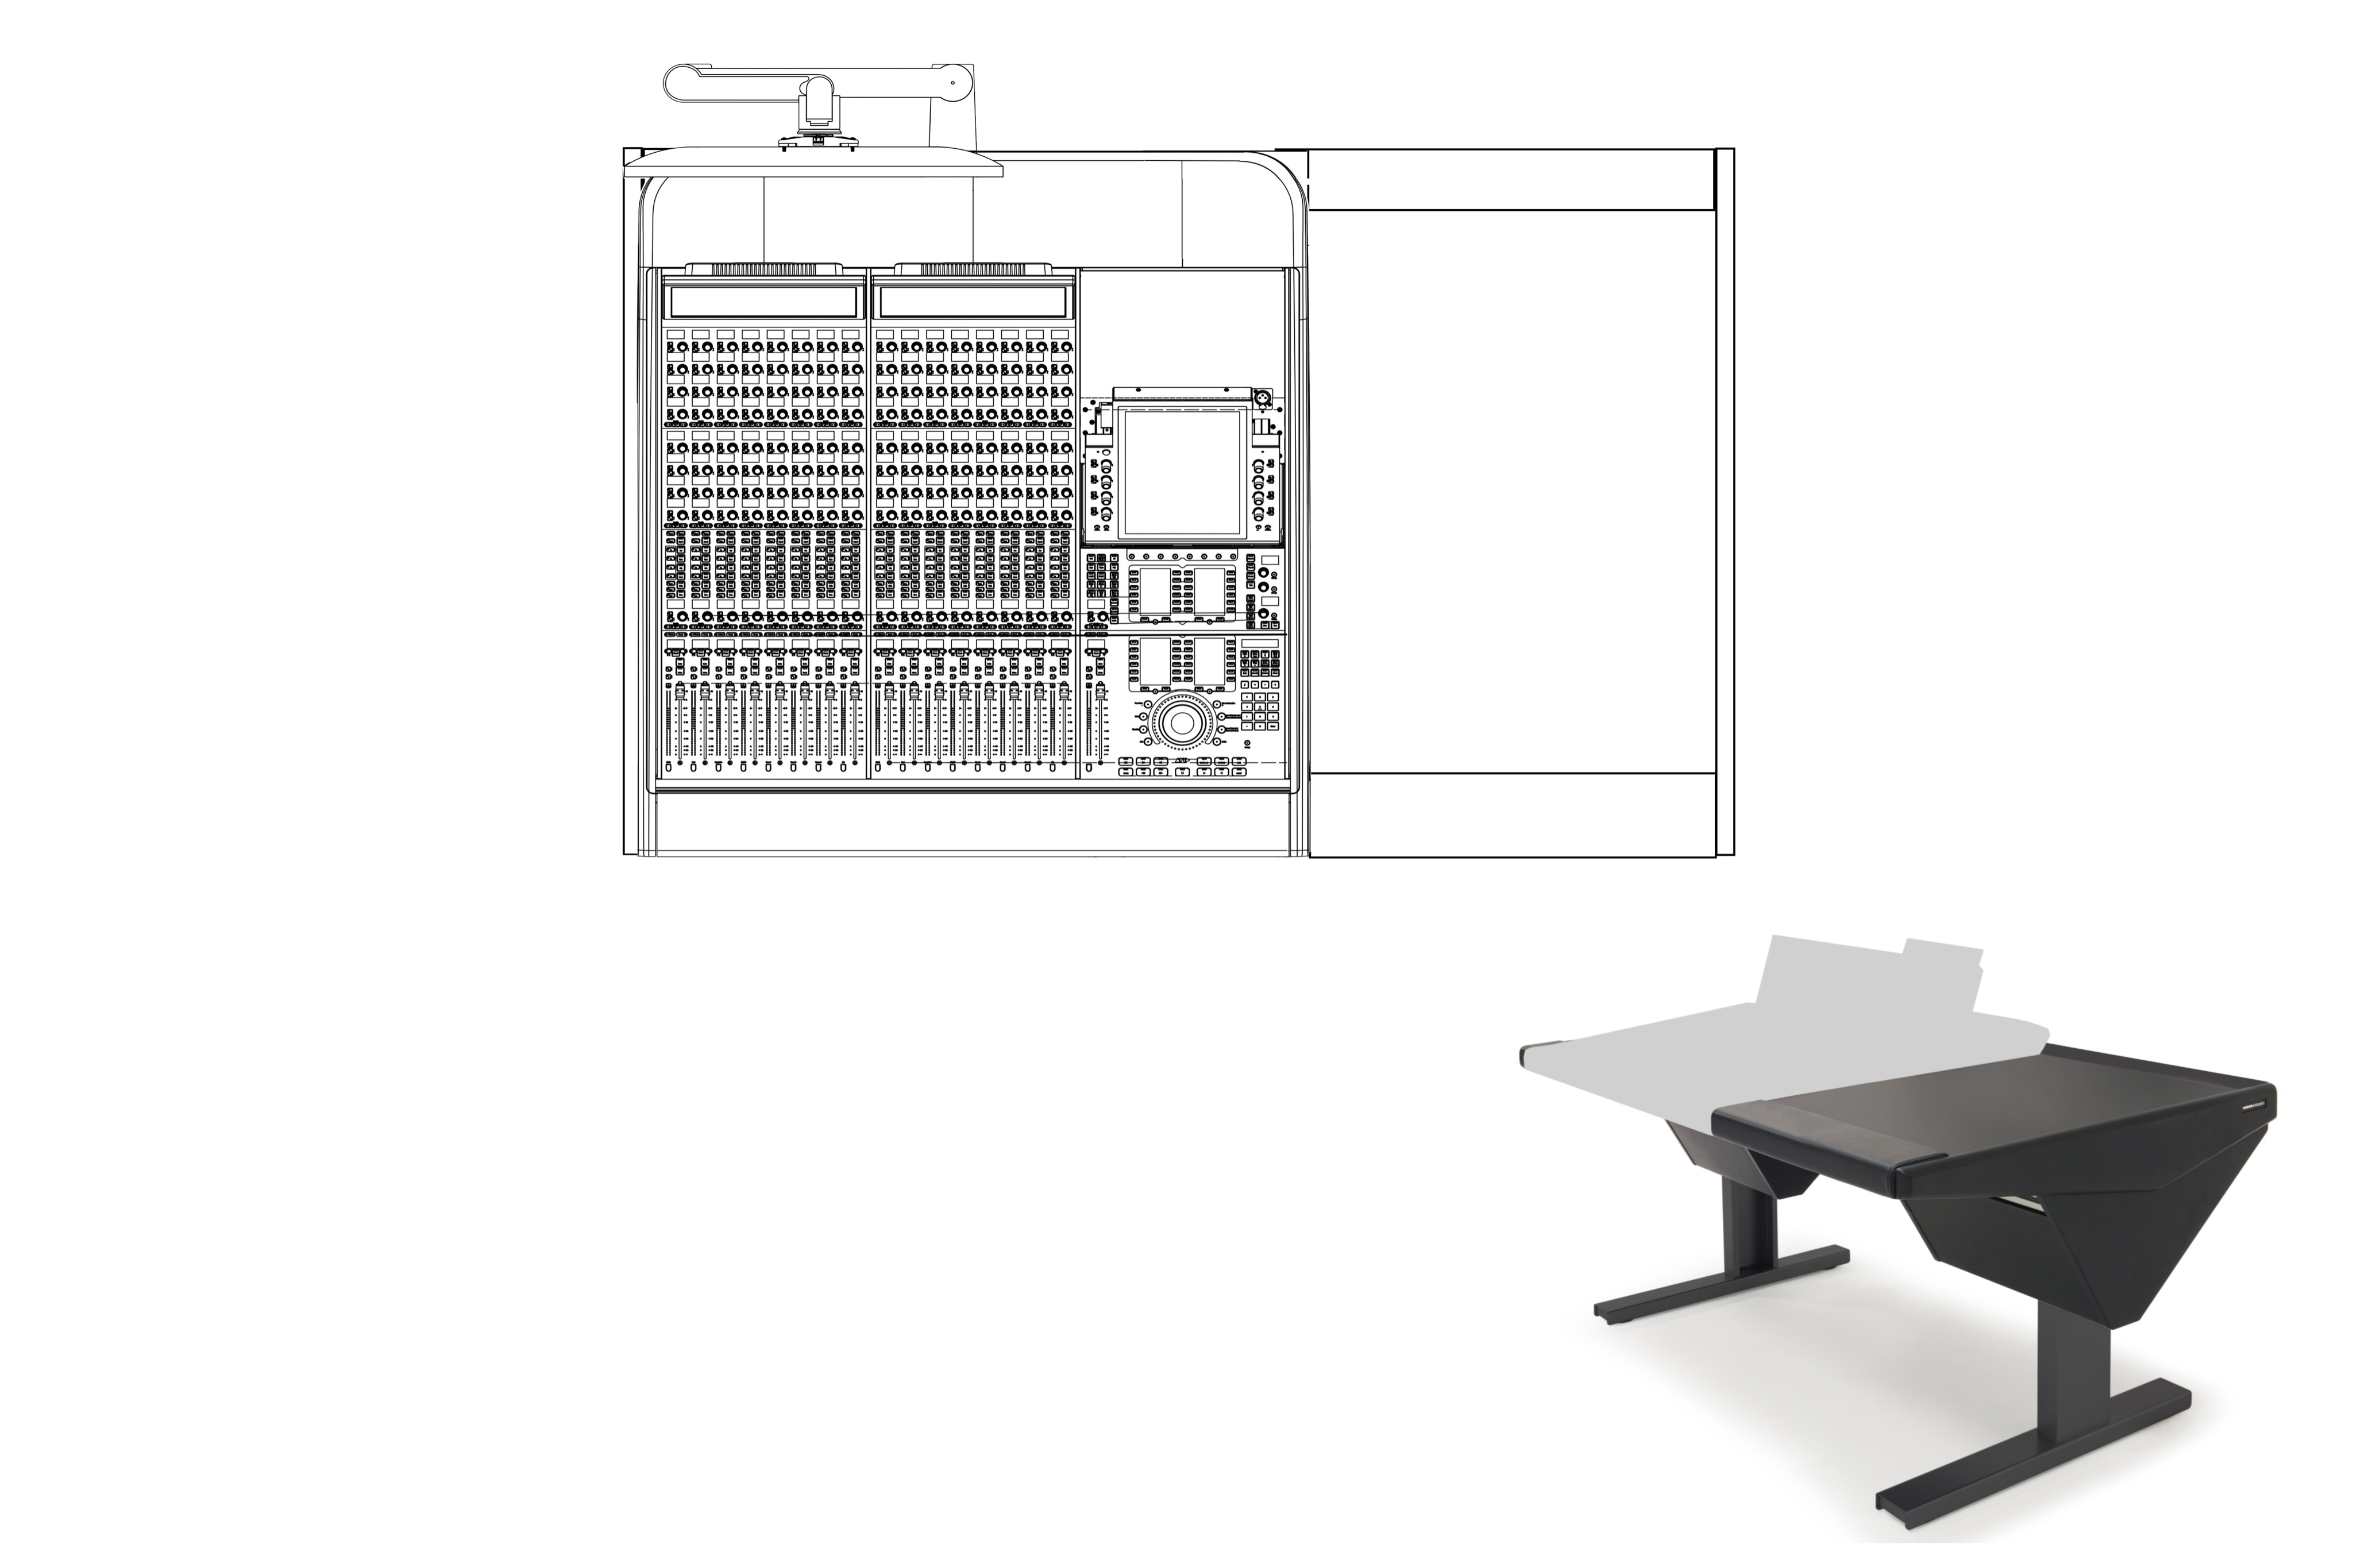 16 Fader System with Desk (R)